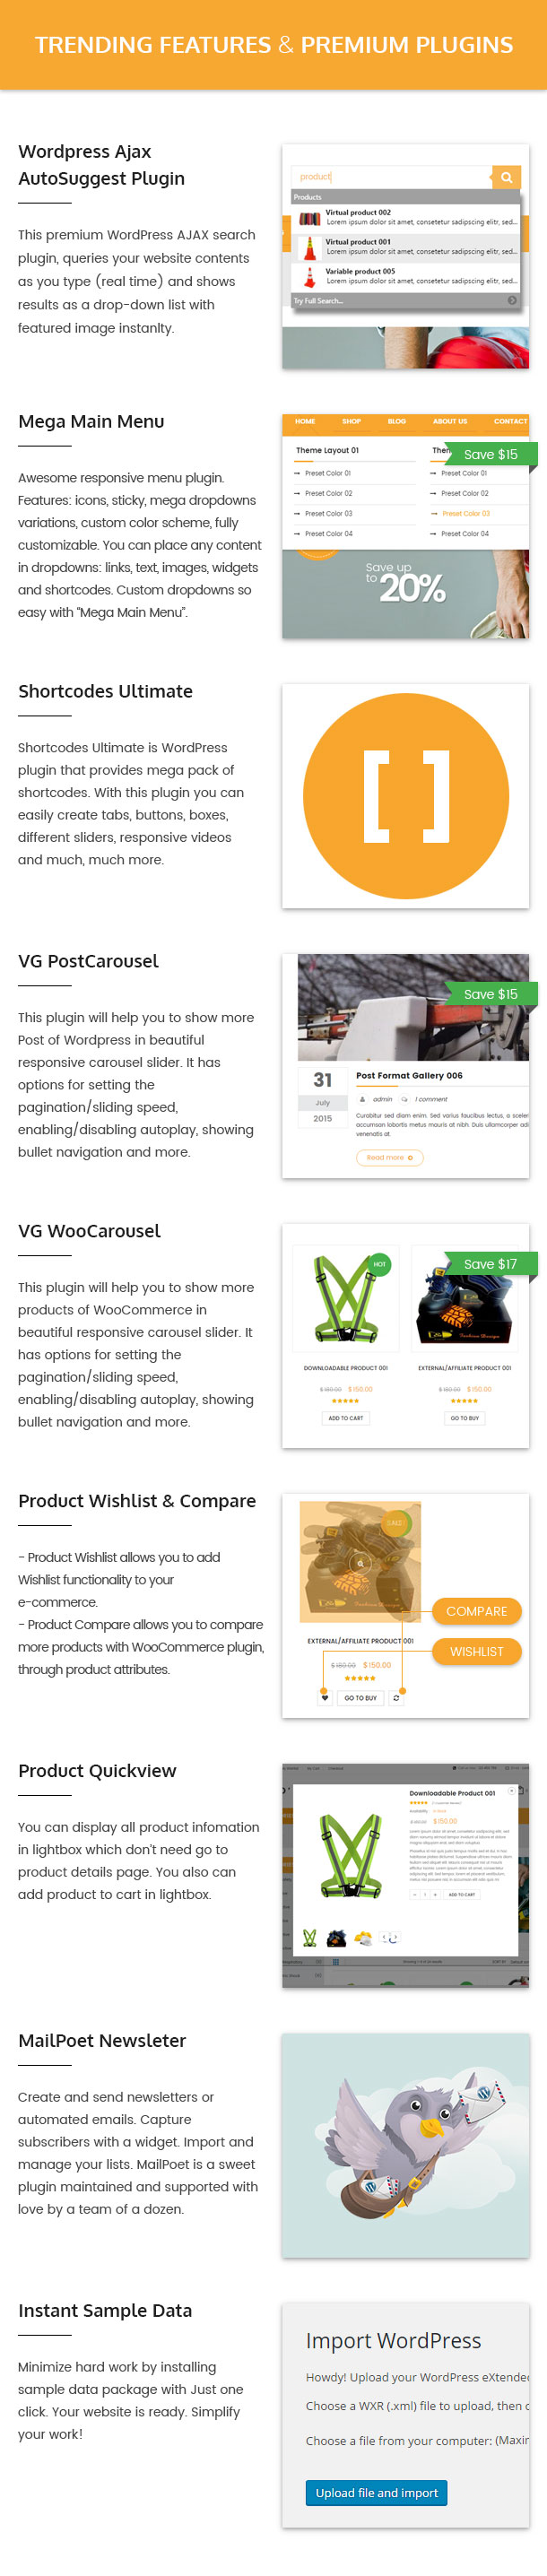 VG Labo - WooCommerce Theme for Tools, Equipment Store - 29